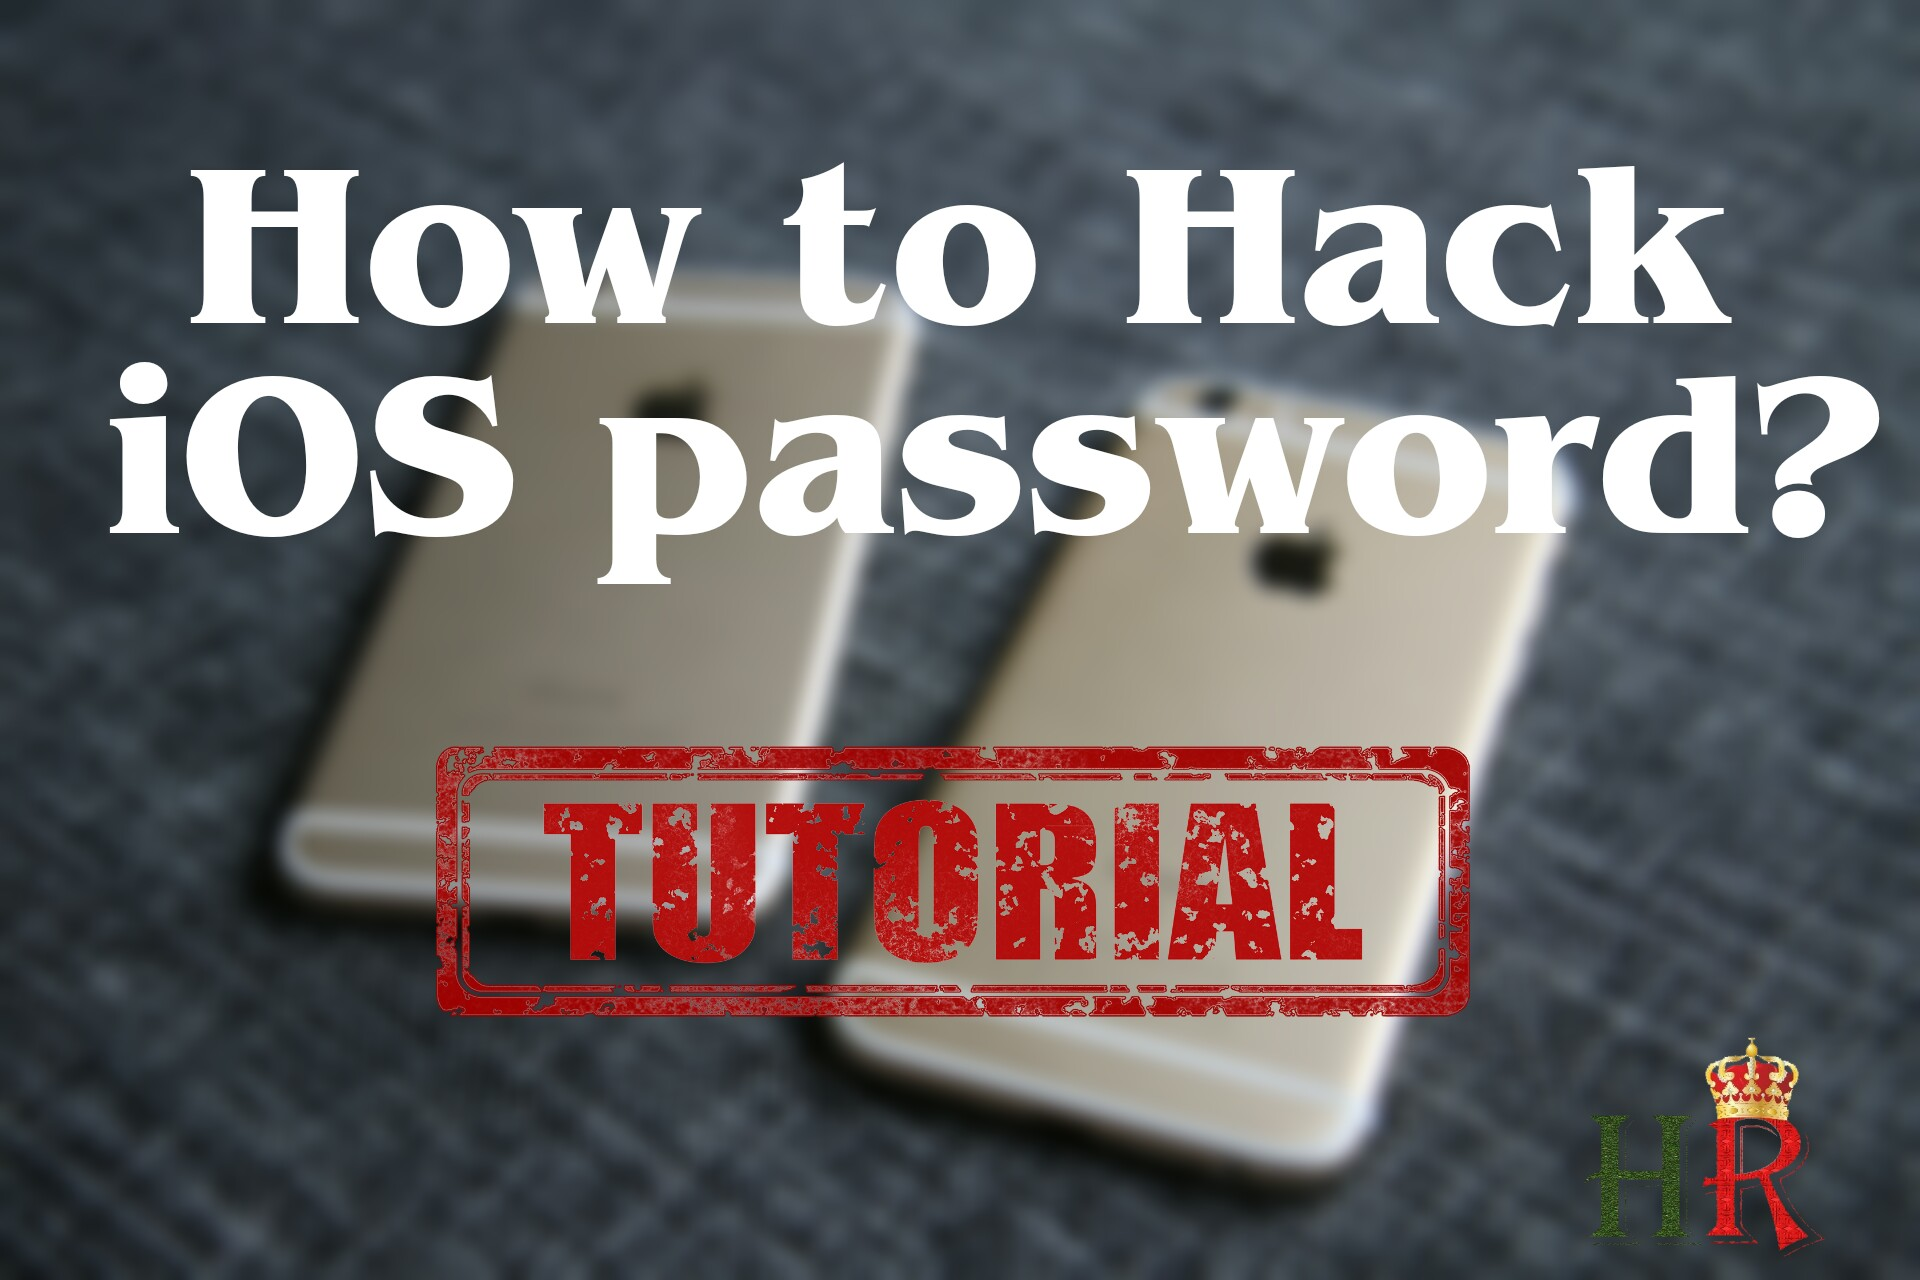 How To Crack iOS Passwords : Step-By-Step Tutorial